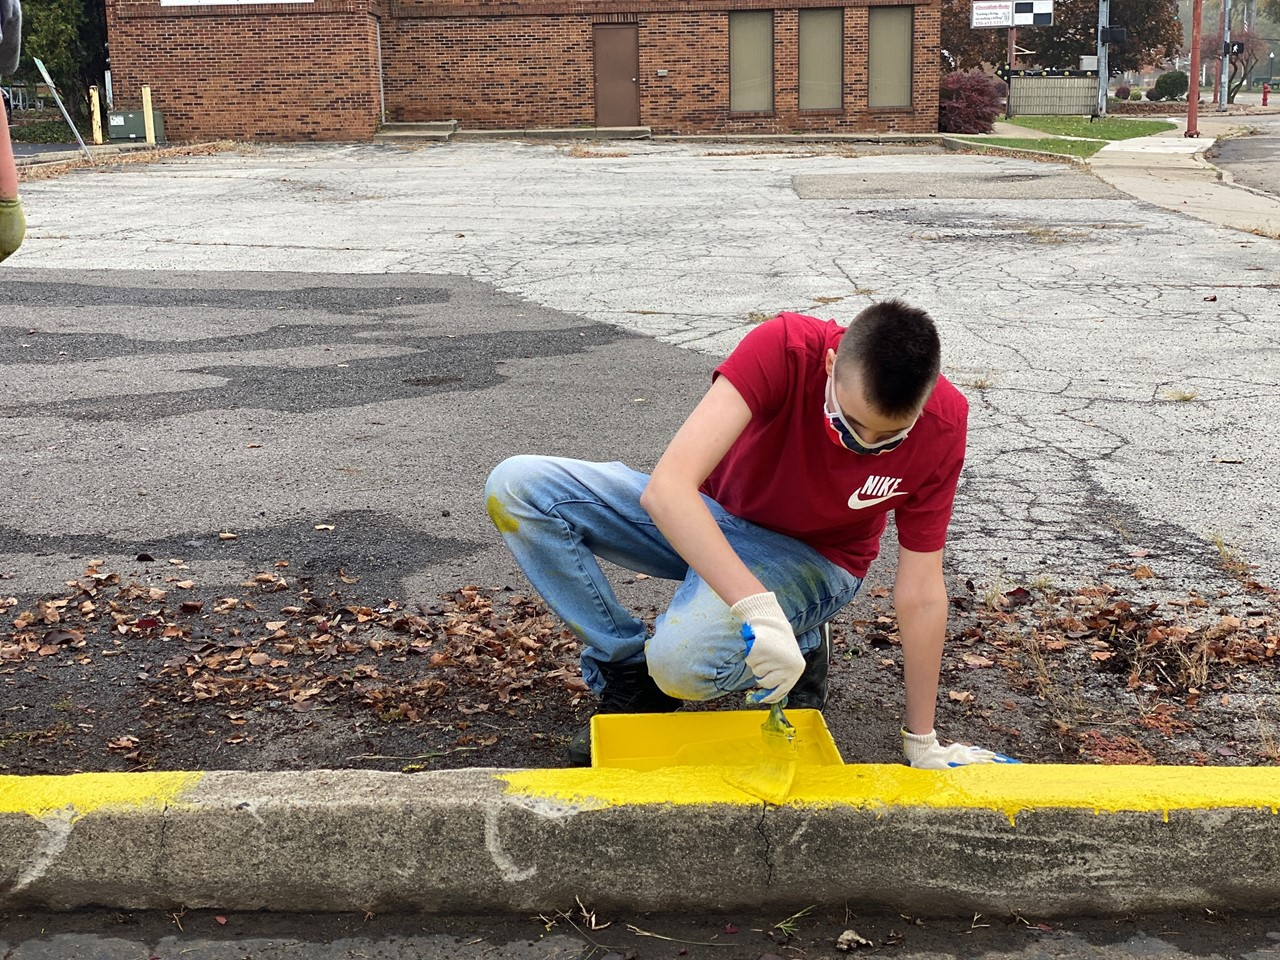 TCESC students paint lines and finish other tasks needed at the SCOPE Senior Center in Niles as part of a new vocational program in partnership with the city and Mayor Steve Mientkiewcz.